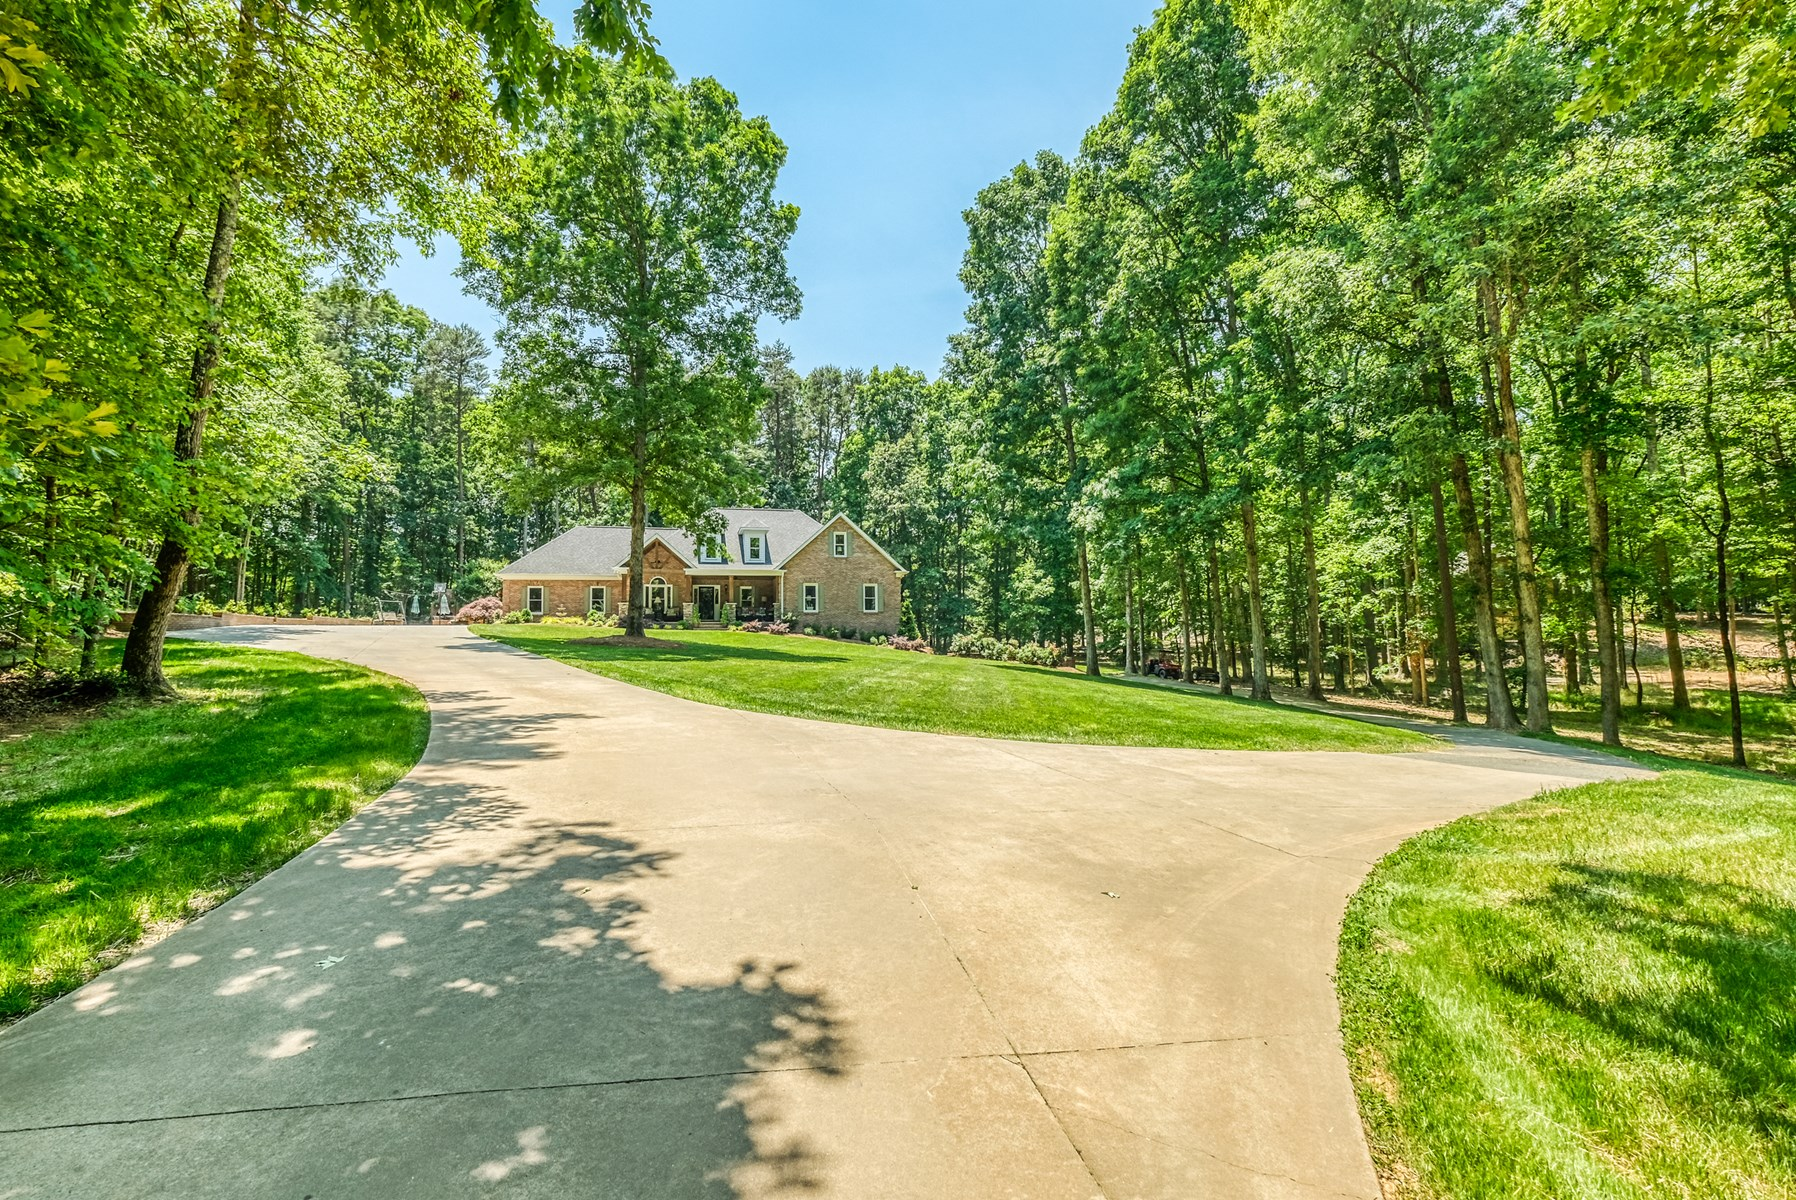 Large Brick Home with Acreage For Sale in Midland NC